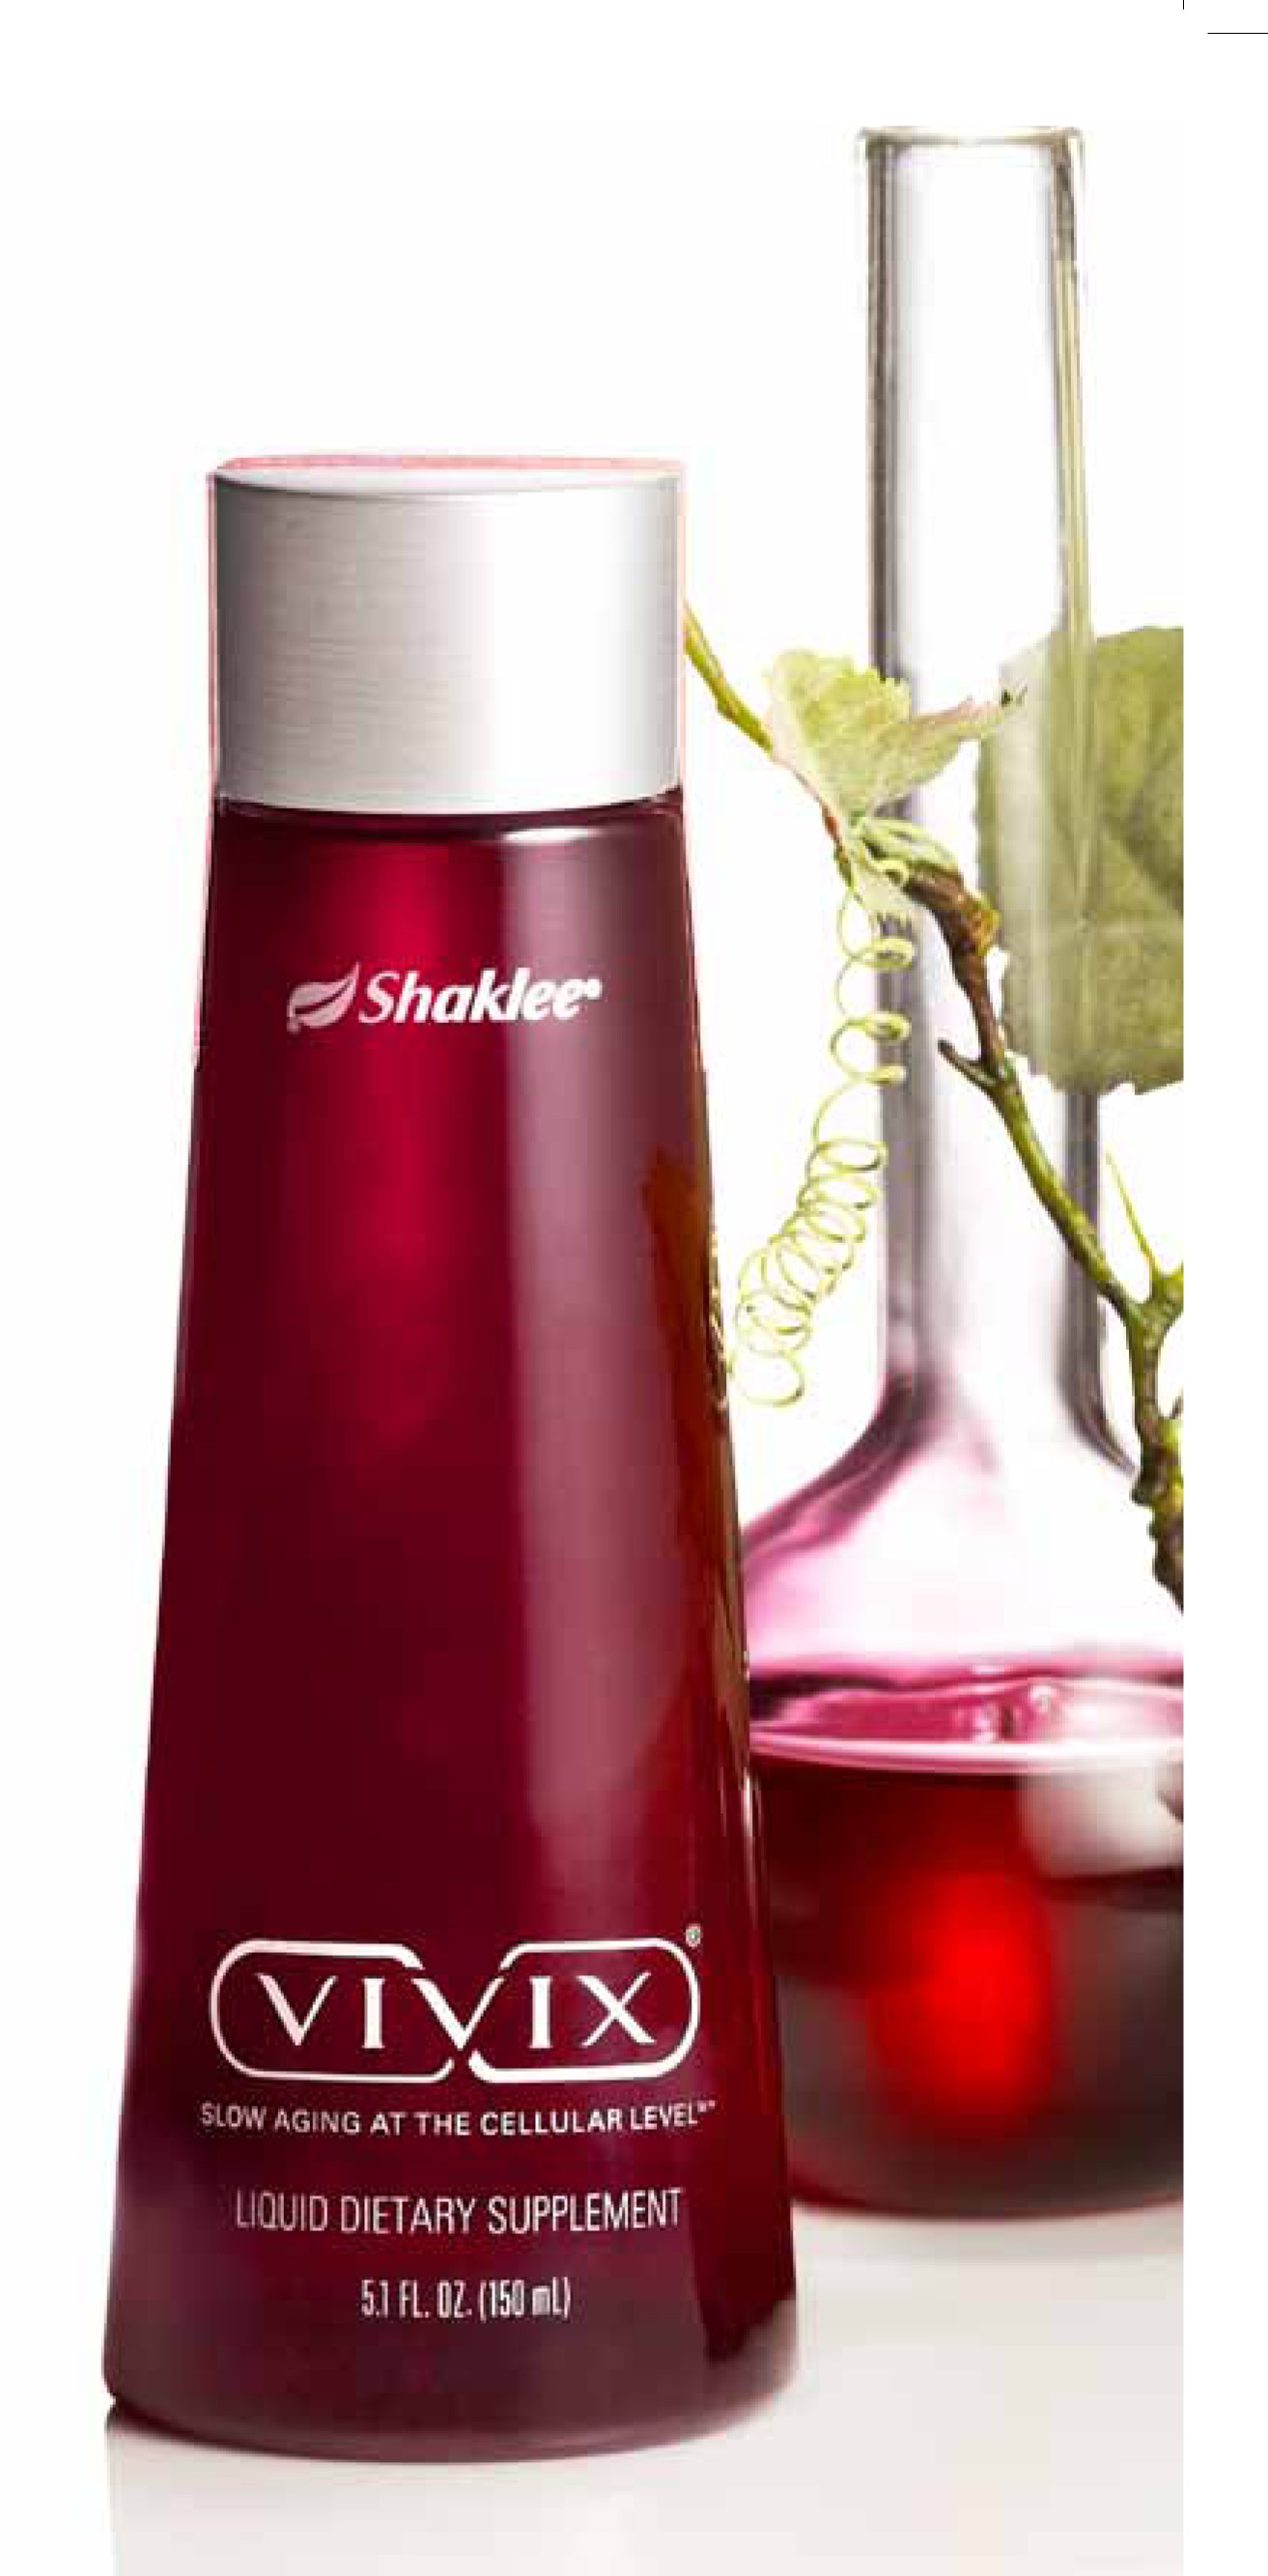 http://pathtowellness.myshaklee.com/us/en/products.php?sku=21200